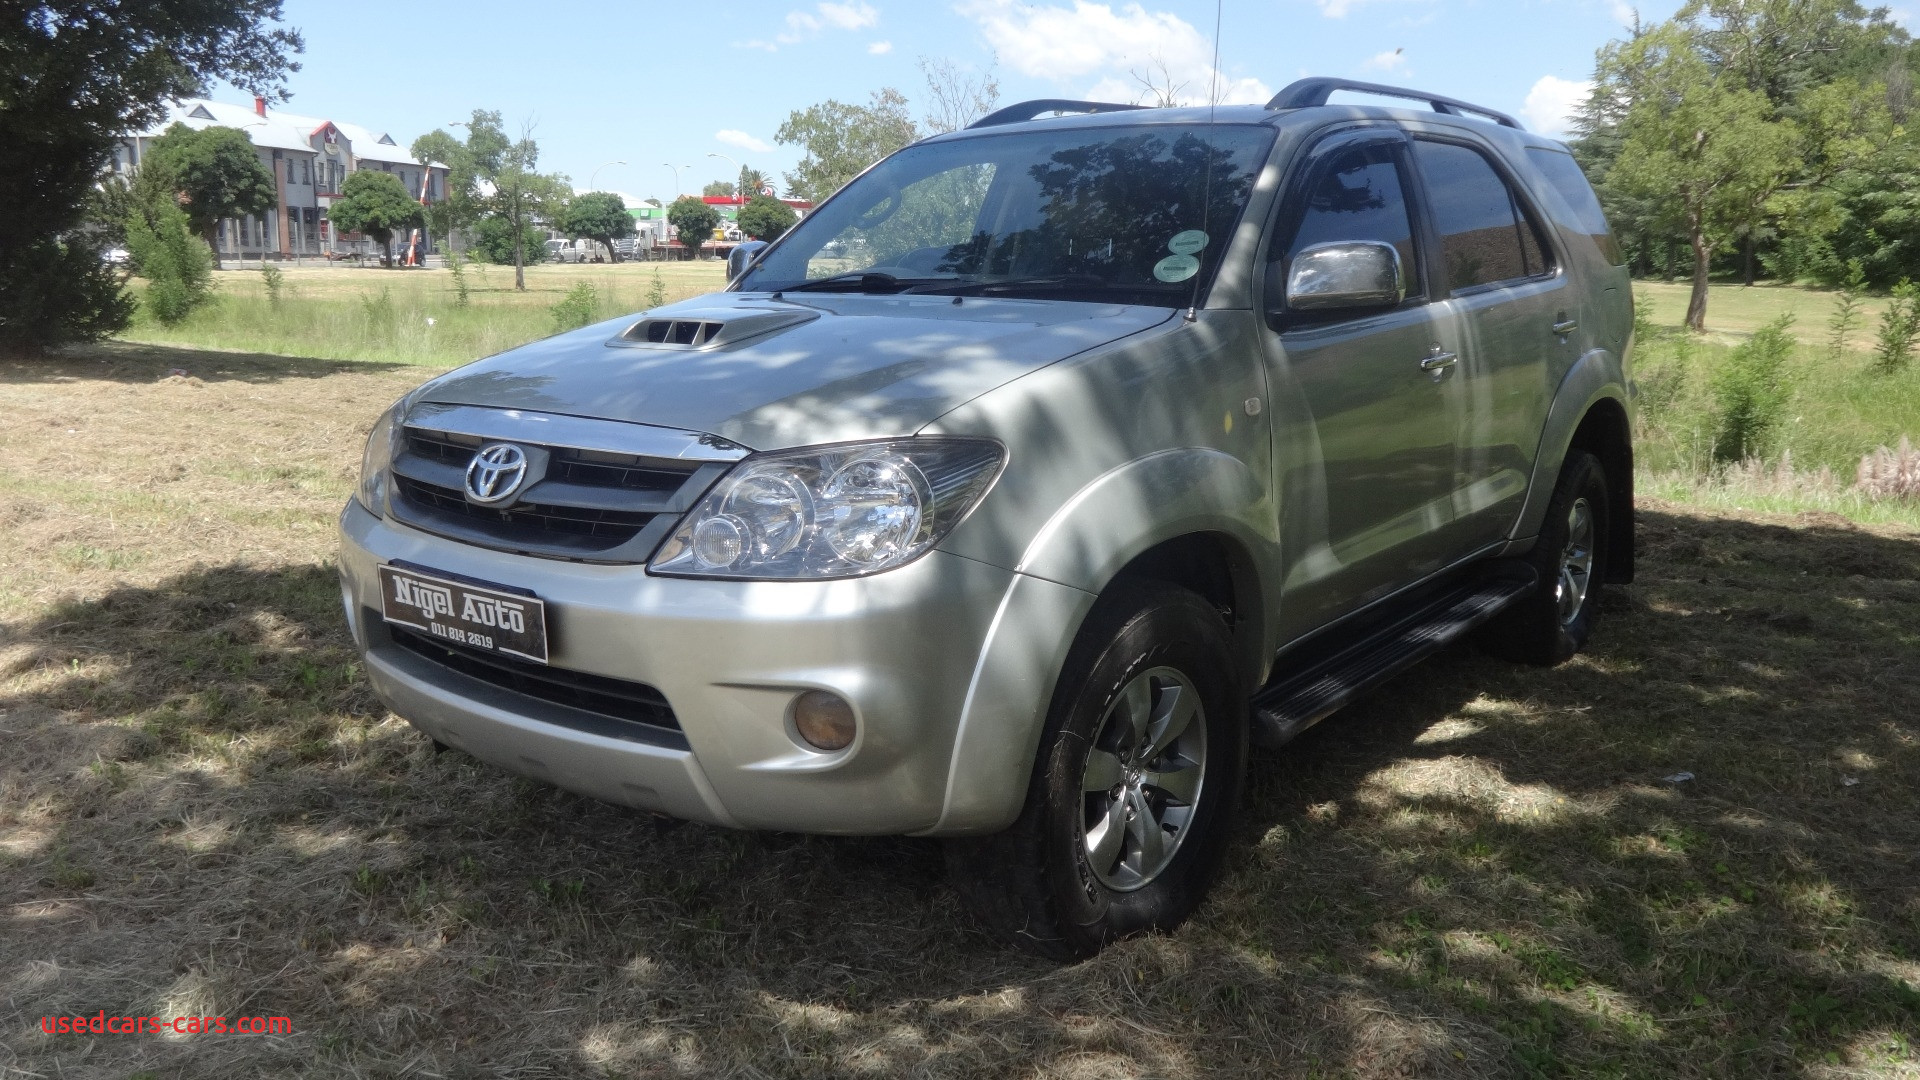 Used Cars for Sale Za Unique toyota fortuner fortuner 3 0d 4d 4x4 for Sale In Gauteng